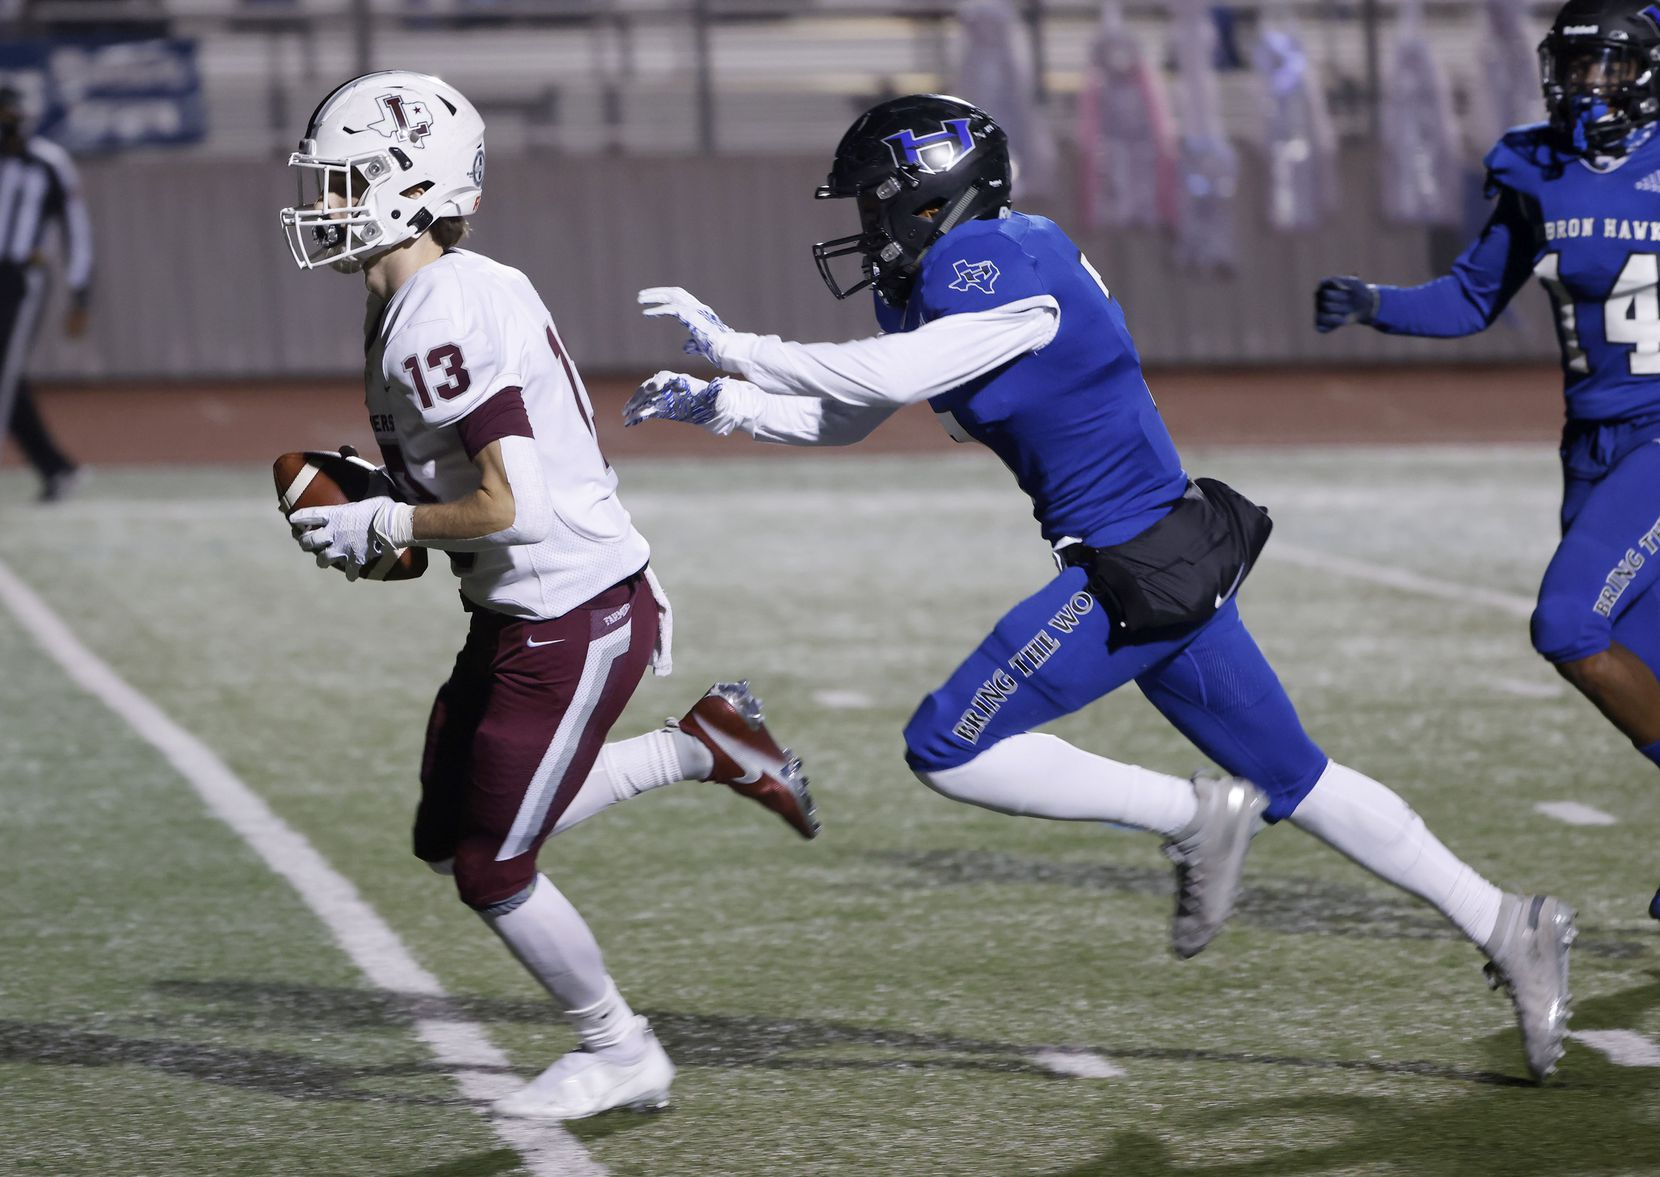 Lewisville receiver Brent Allen (13) scores a a touchdown as he is chased by Hebron's Trenton Bronaugh (7) during their District 6-6A high school football game on Dec. 4, 2020. (Michael Ainsworth/Special Contributor)